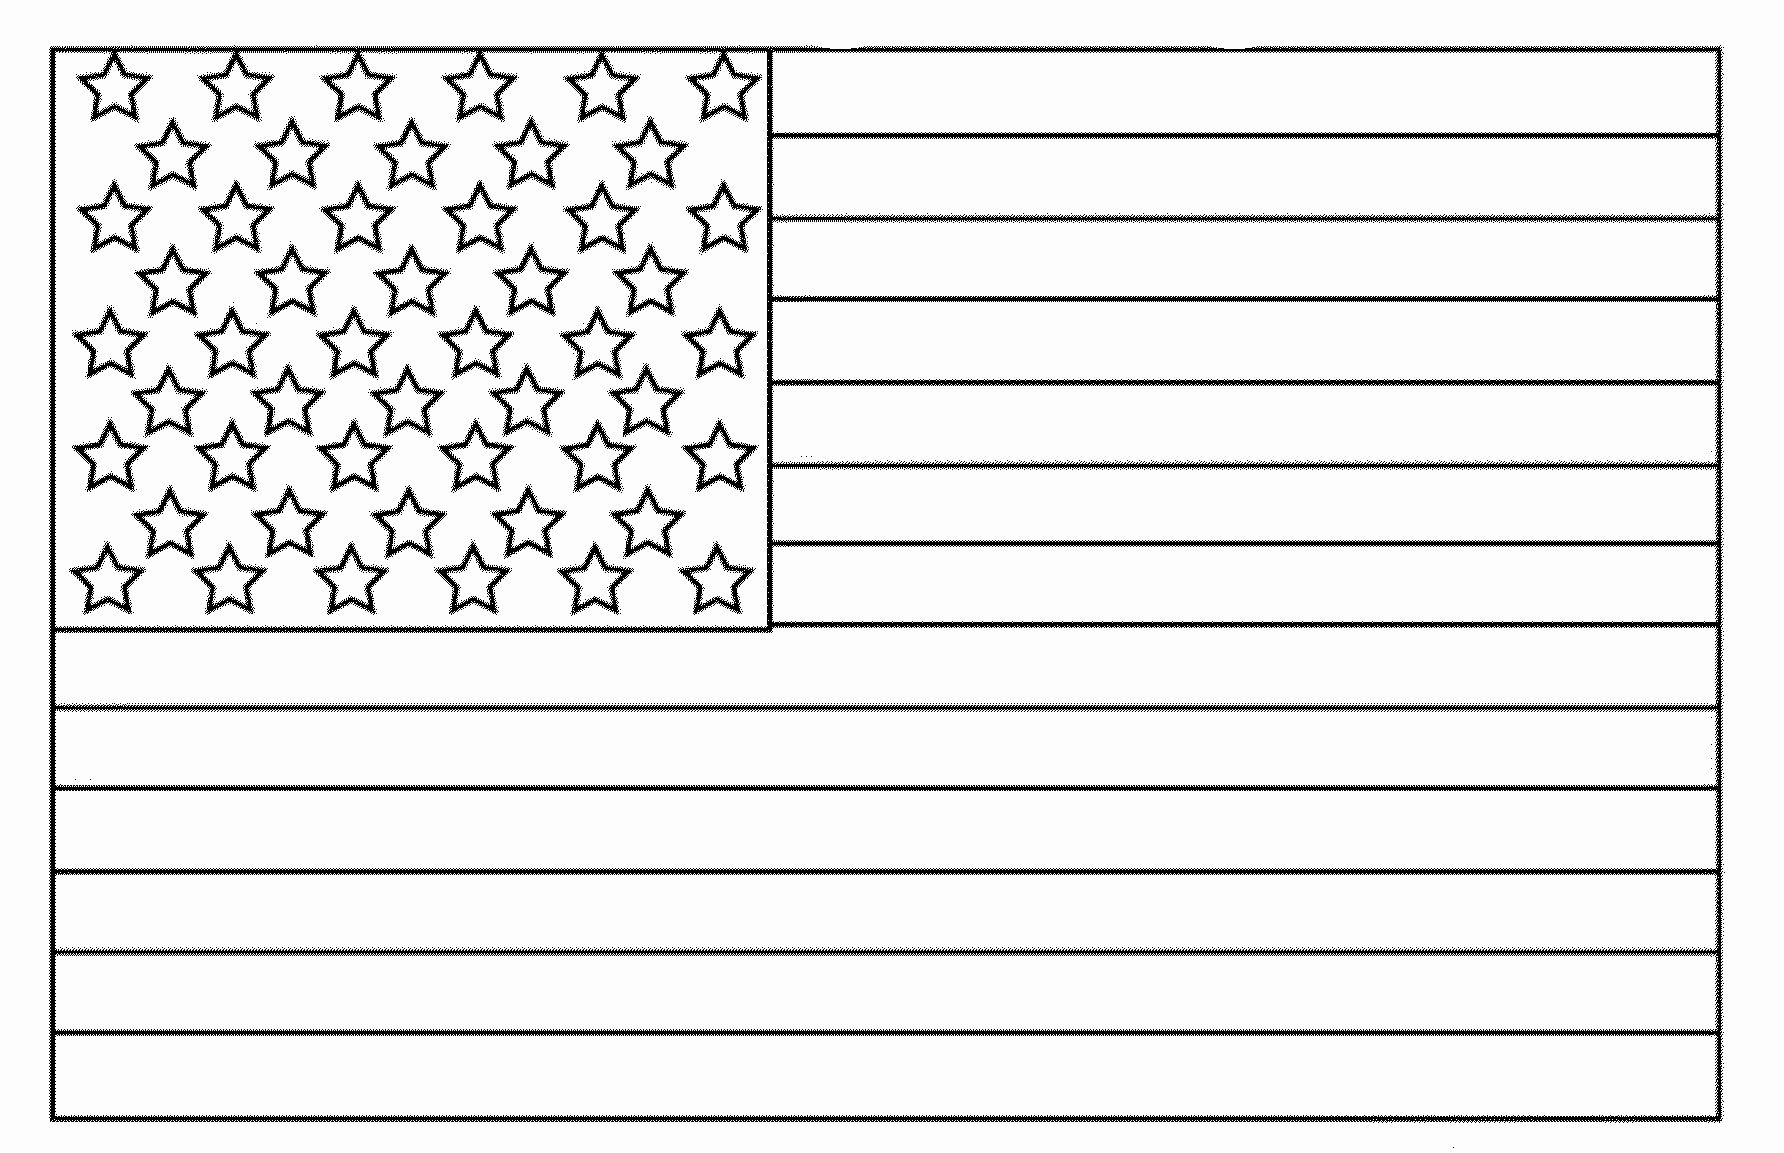 American Flags Coloring Pages In 2020 American Flag Coloring